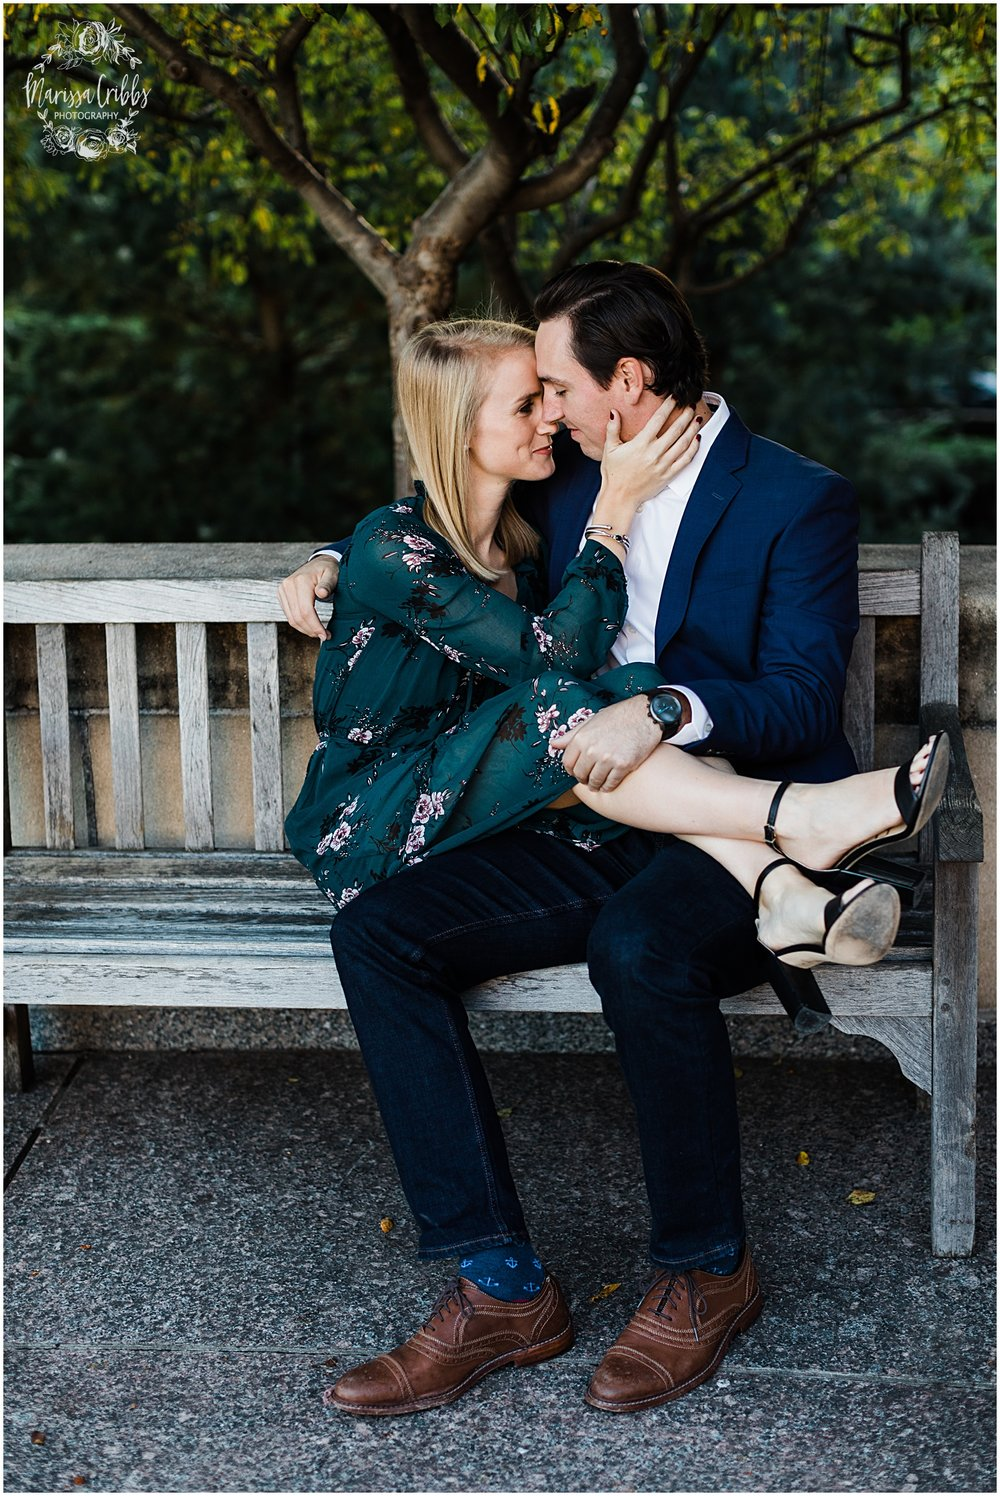 HALEY & CHASE ENGAGED LOOSE PARK & NELSON ATKINS | FALL ENGAGEMENT PHOTOS | MARISSA CRIBBS PHOTOGRAPHY_6872.jpg